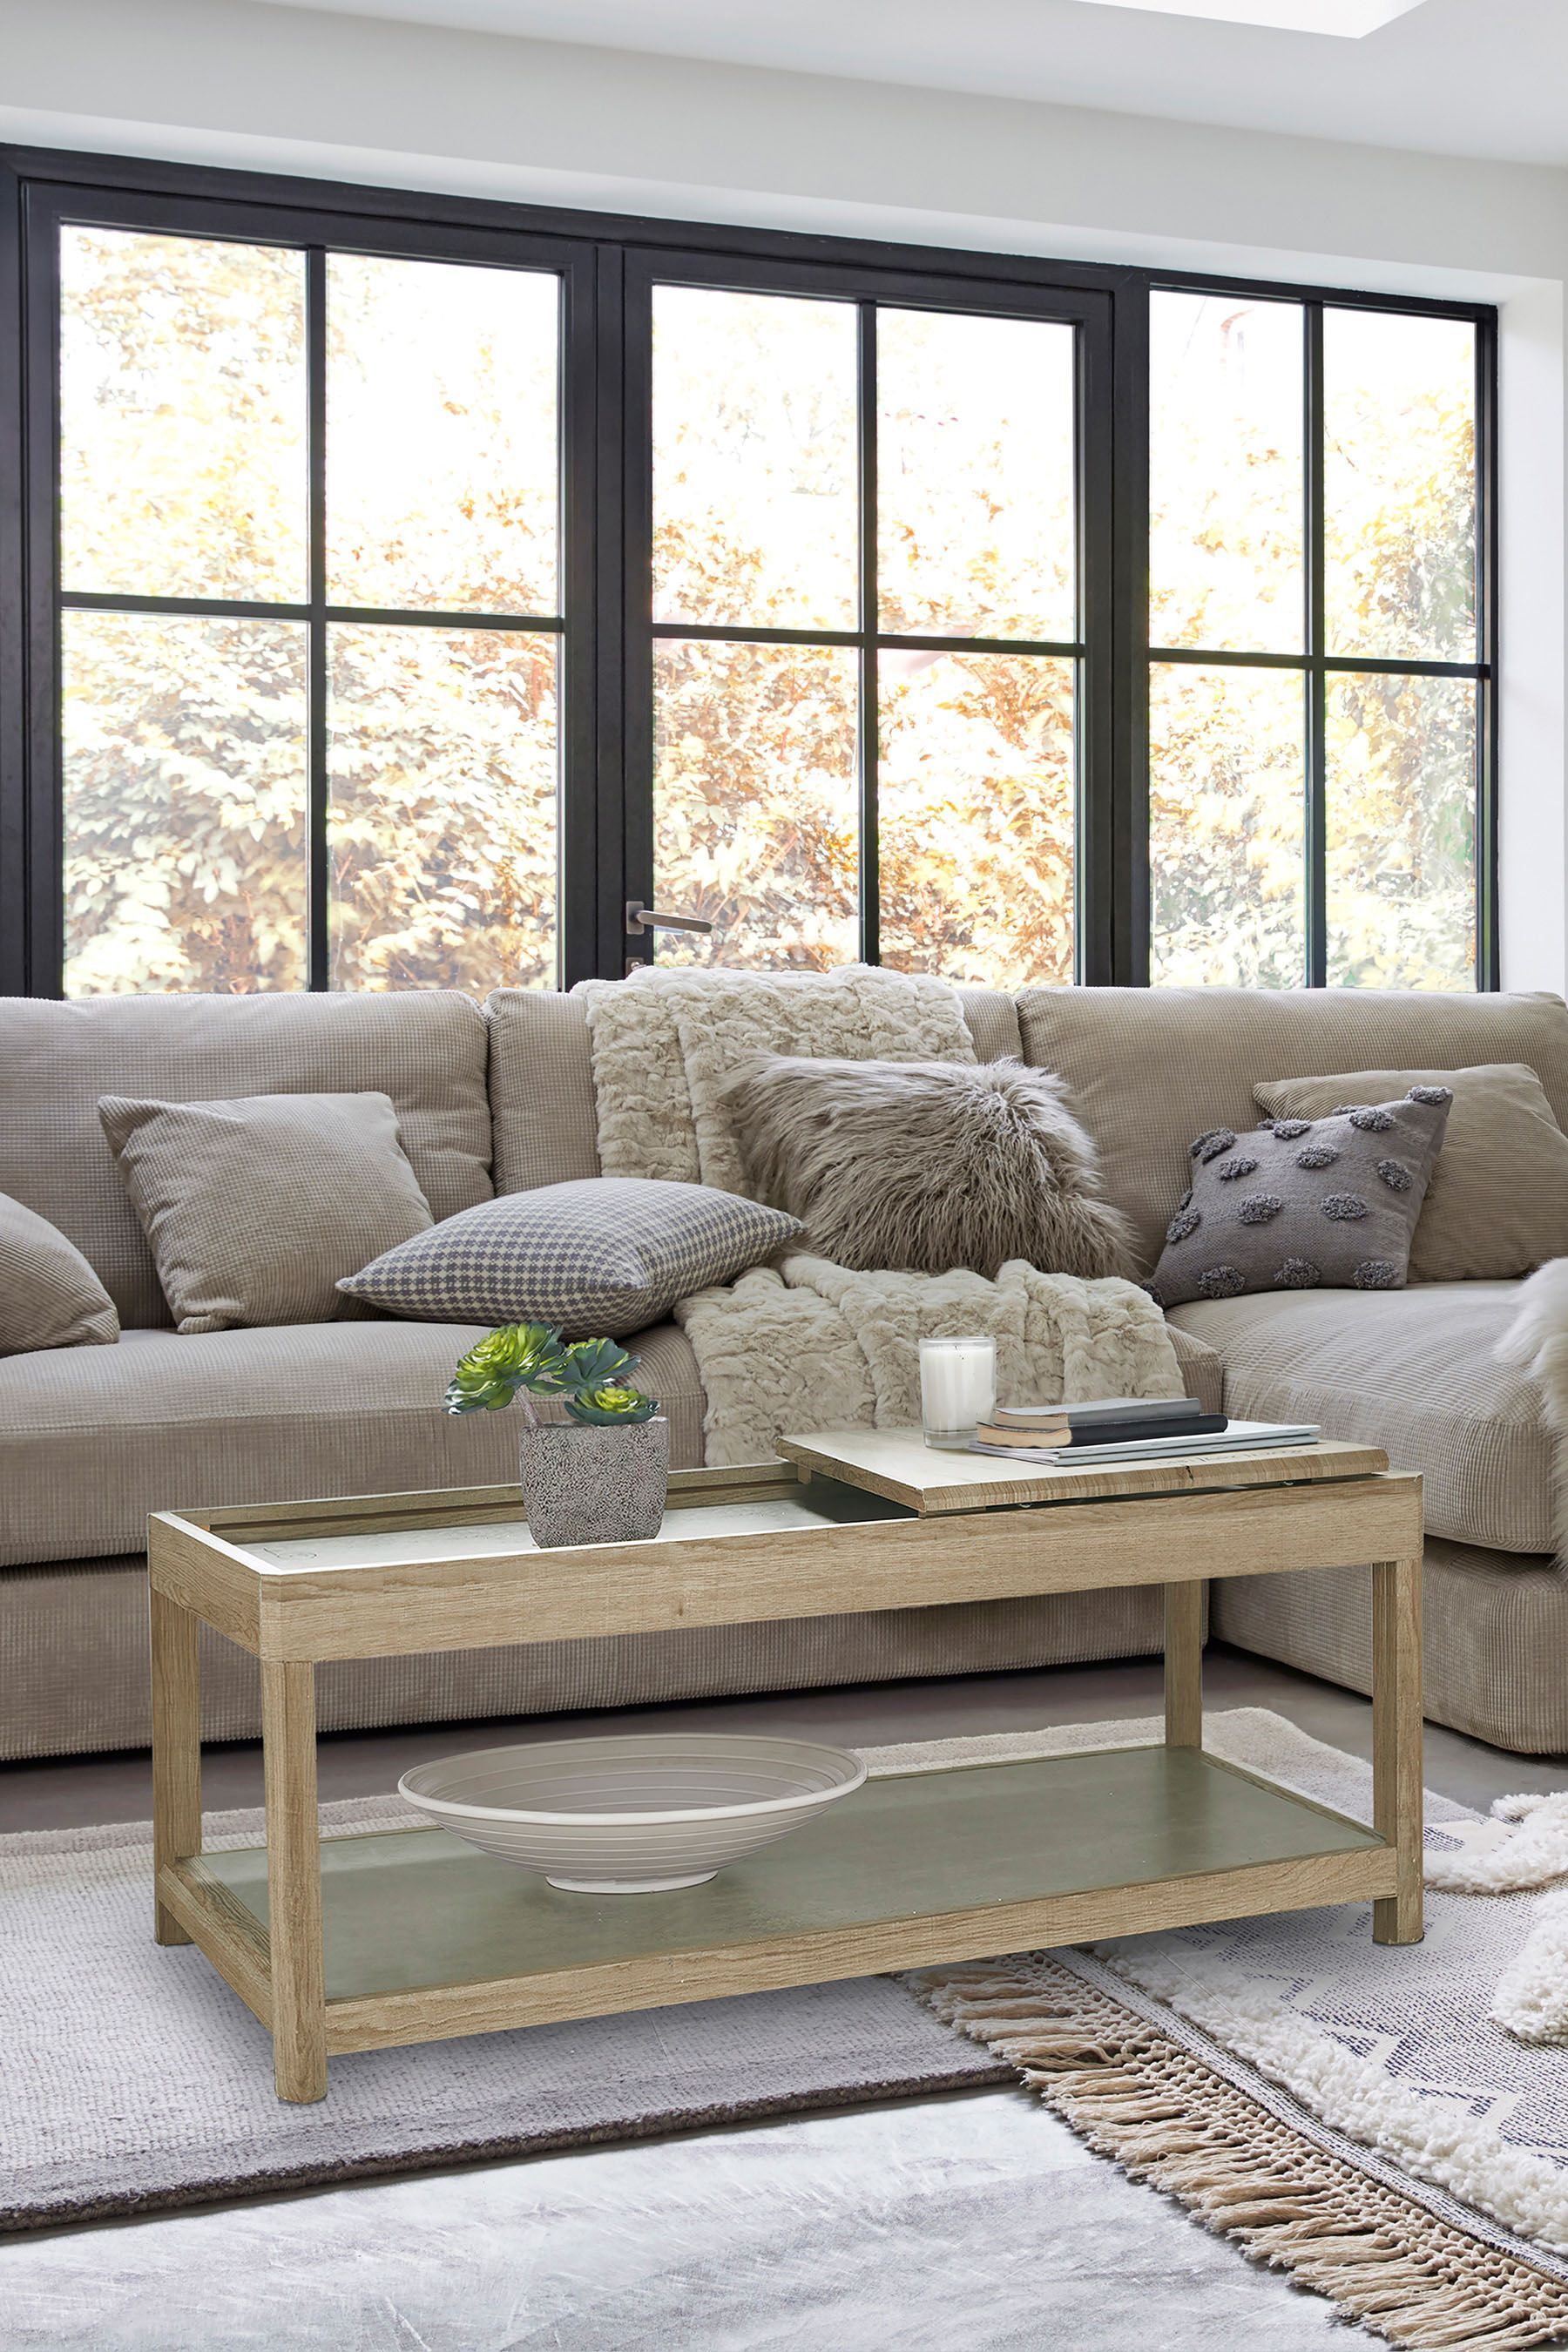 Incredible Next Barkley Coffee Table Products In 2019 Table Table Download Free Architecture Designs Scobabritishbridgeorg